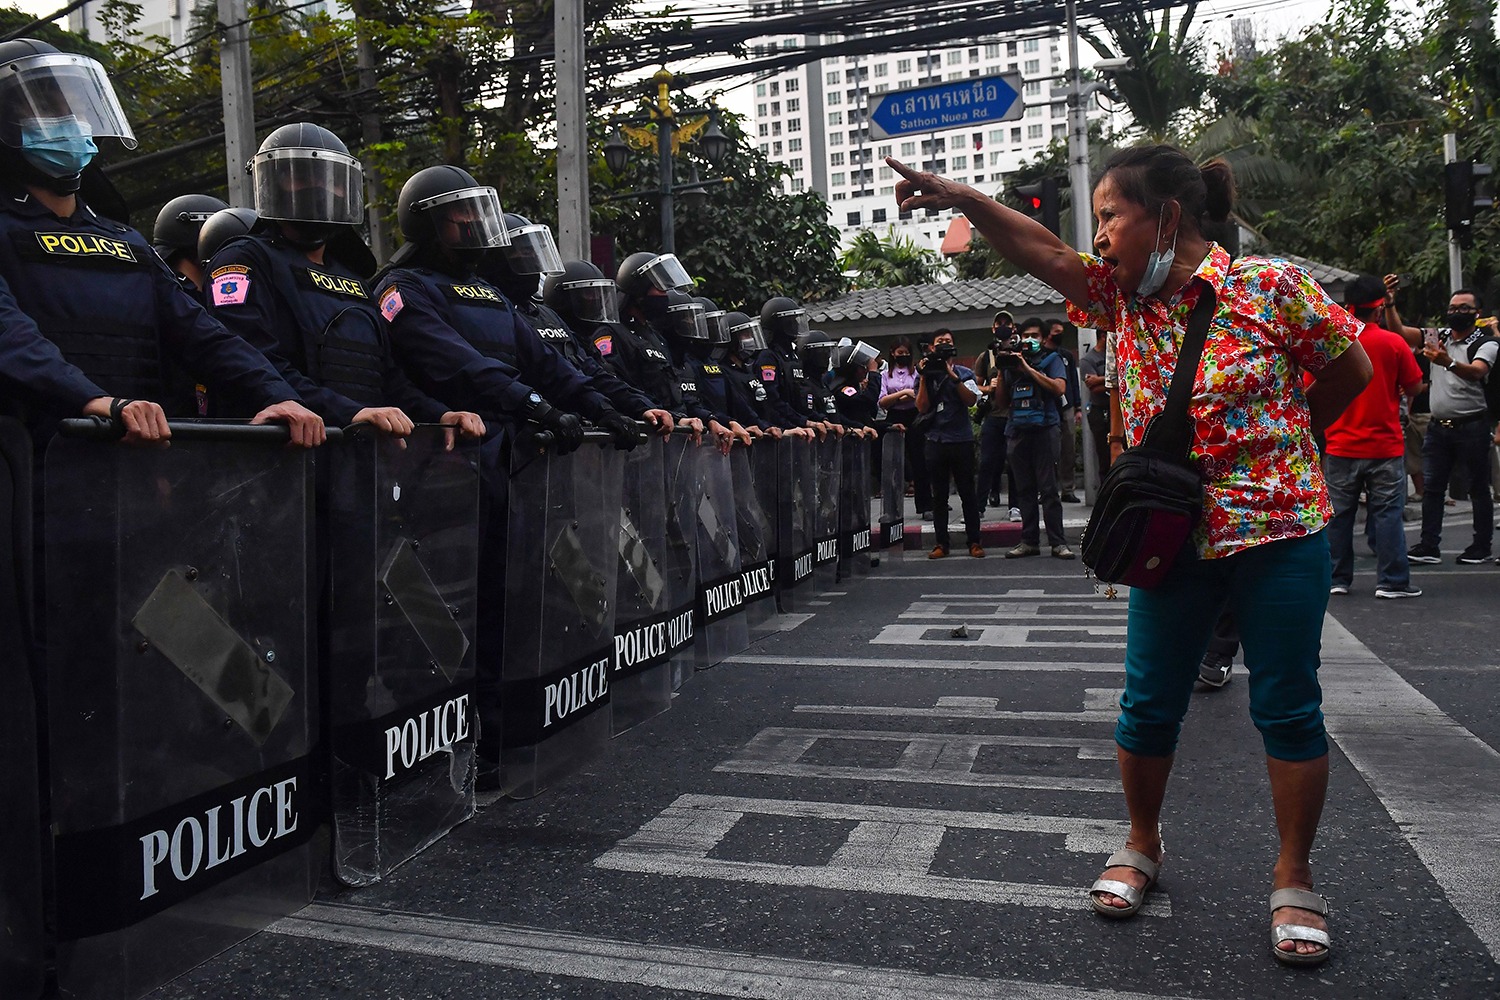 A Thai pro-democracy protester gestures at riot police in Bangkok on Feb. 1, close to where Myanmar migrants were demonstrating after their country's military coup. LILLIAN SUWANRUMPHA/AFP via Getty Images